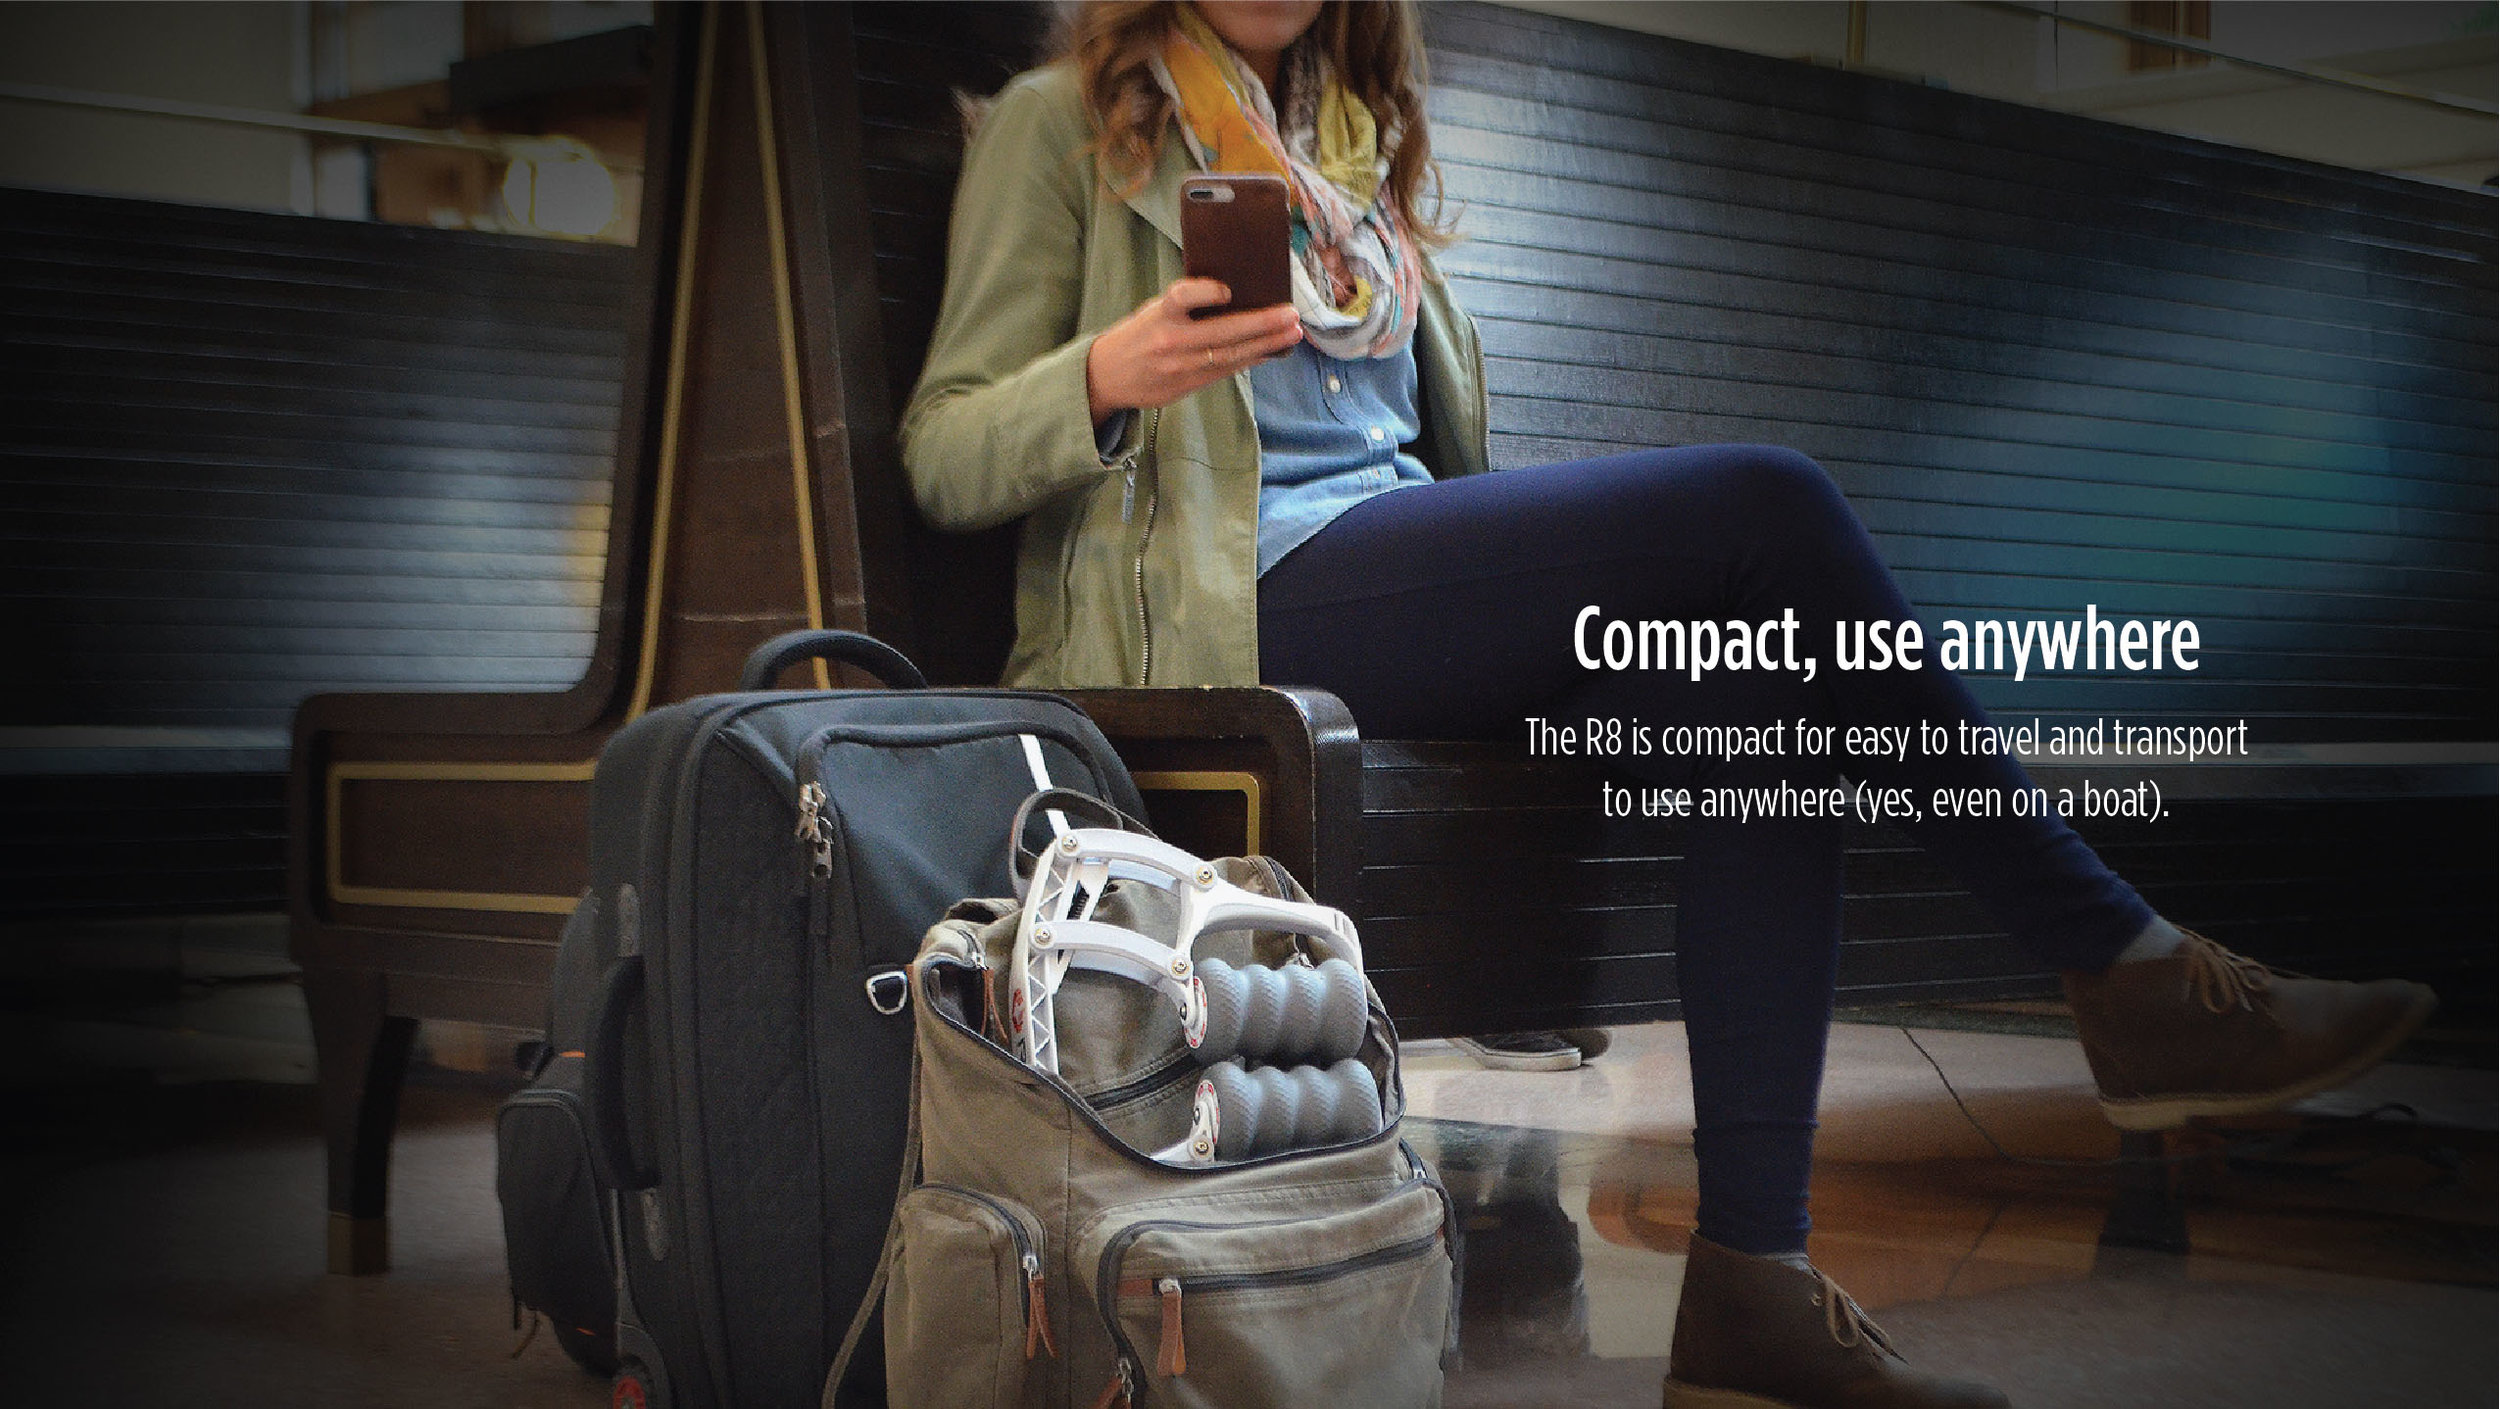 Product-Images_R8-Compact-use-anywhere.jpg